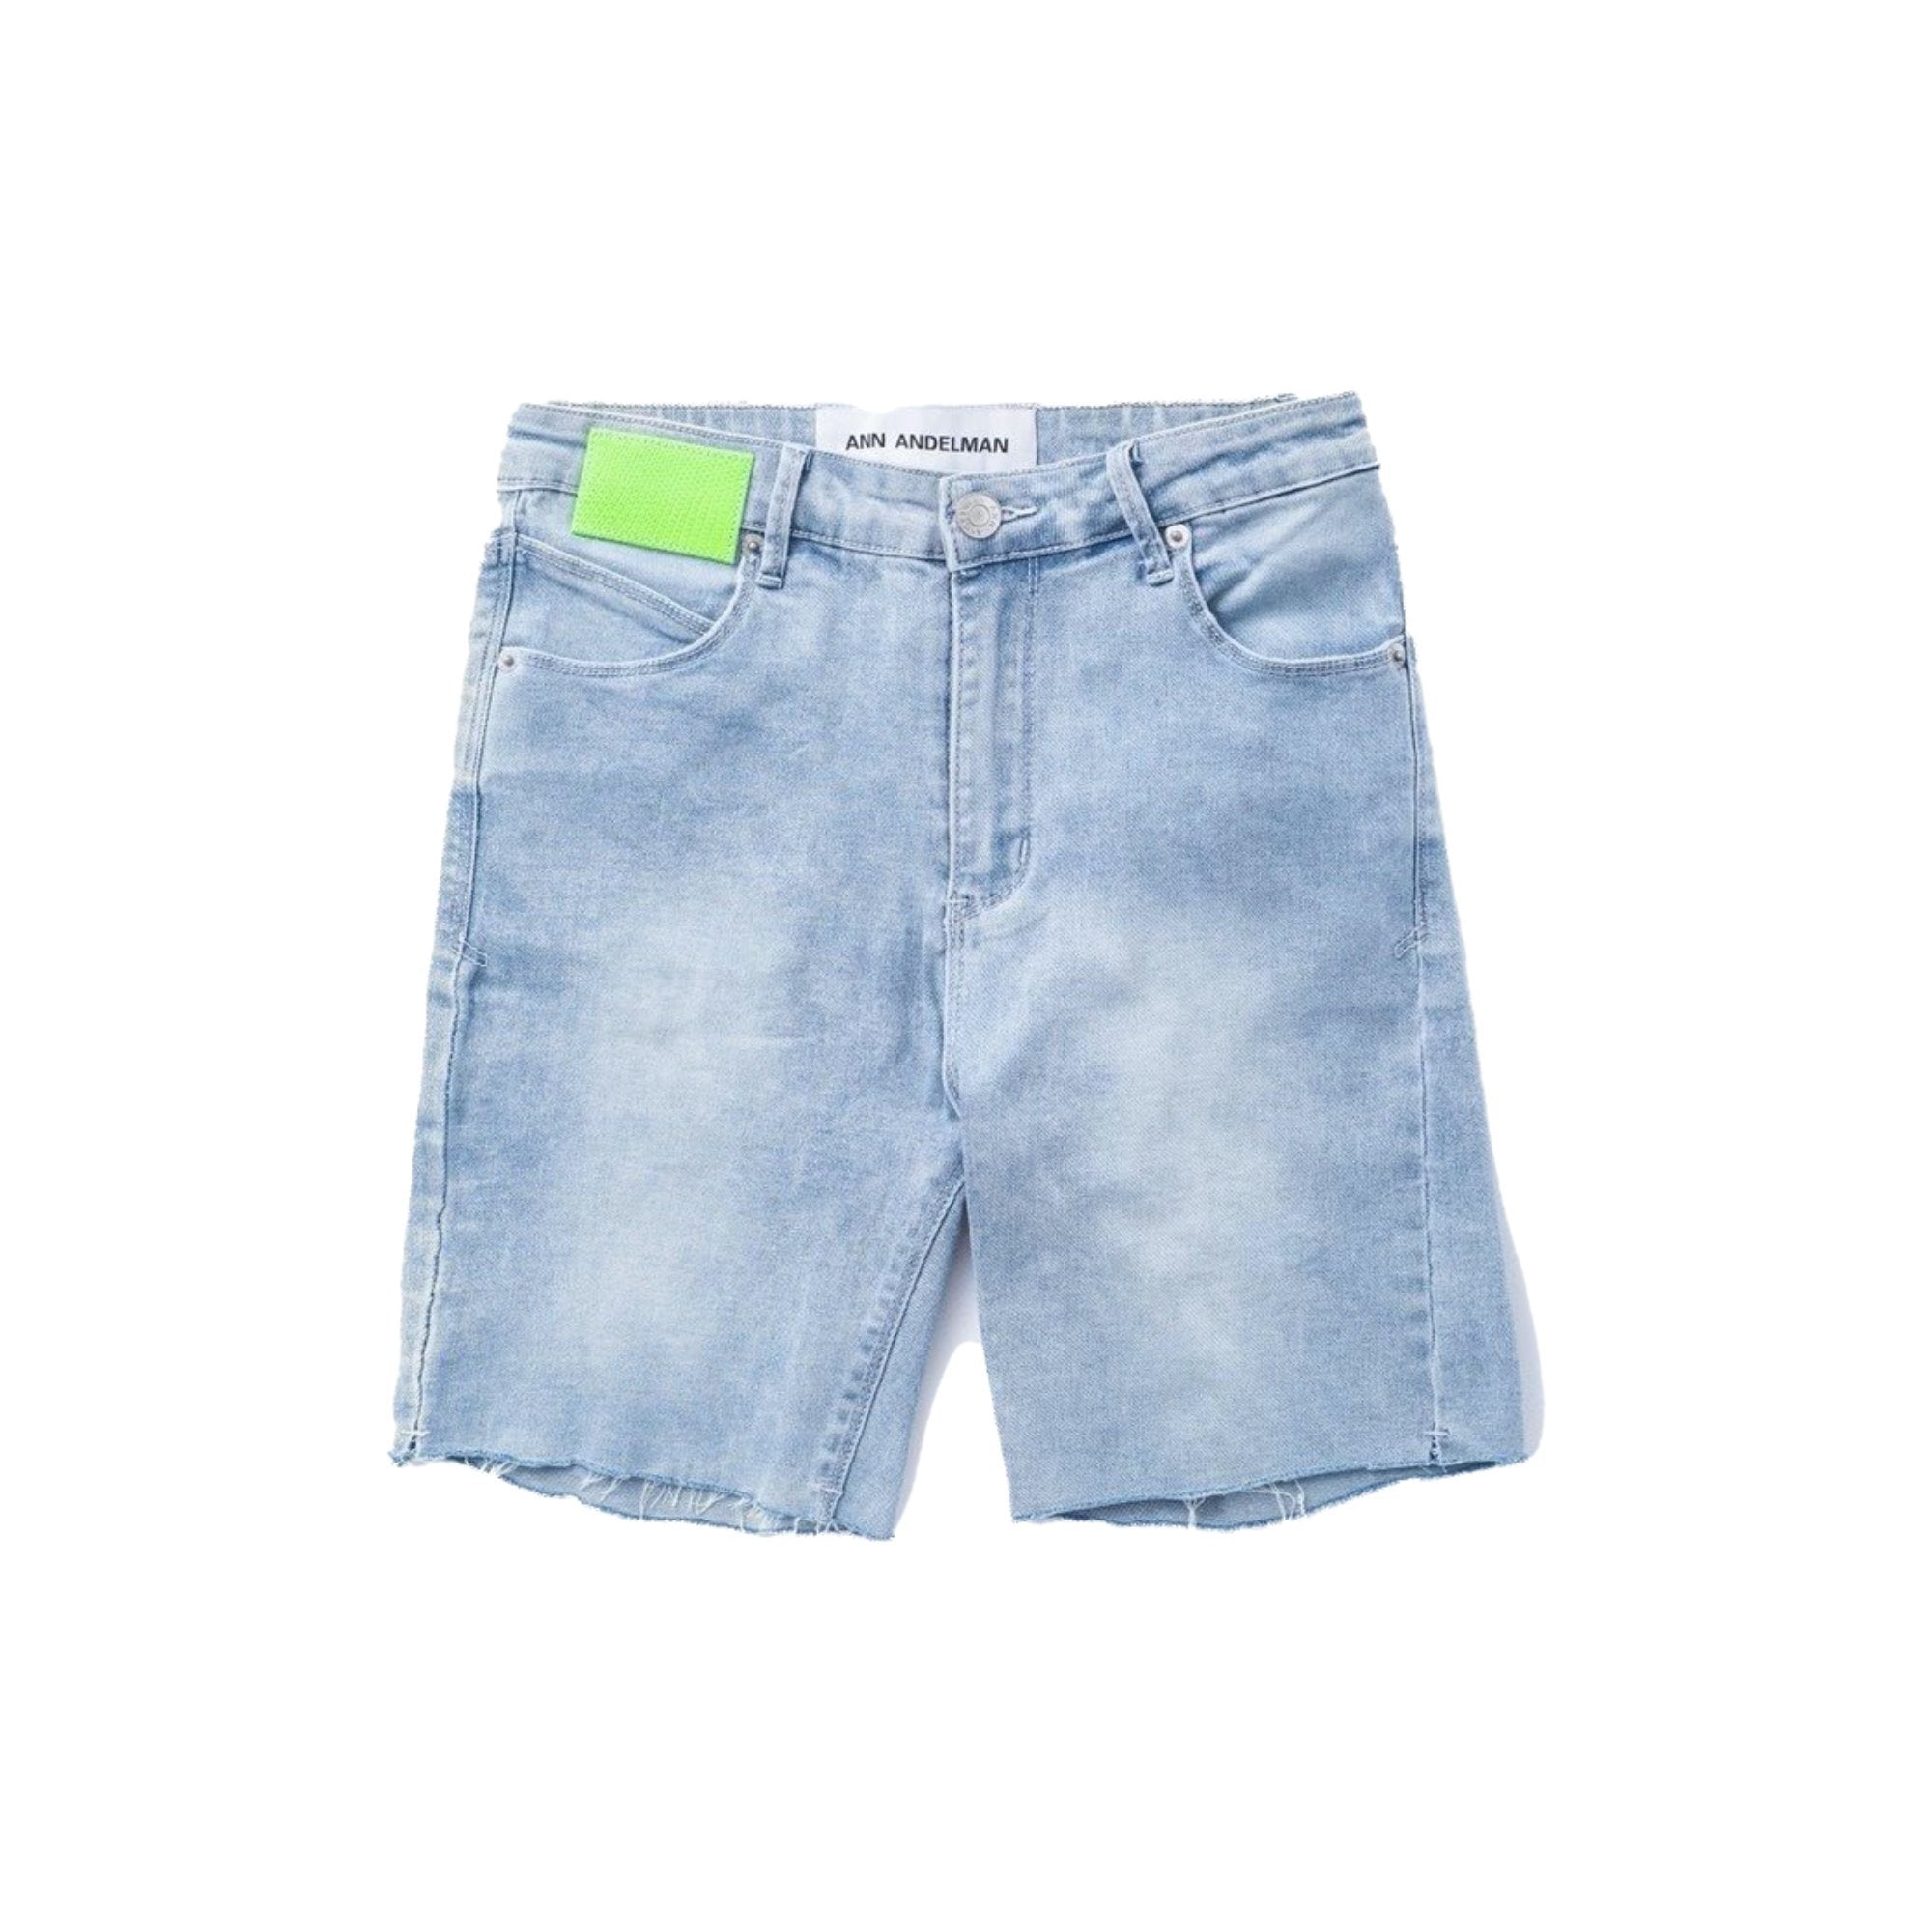 ANN ANDELMAN Blue Lizard Patch Shorts | MADA IN CHINA